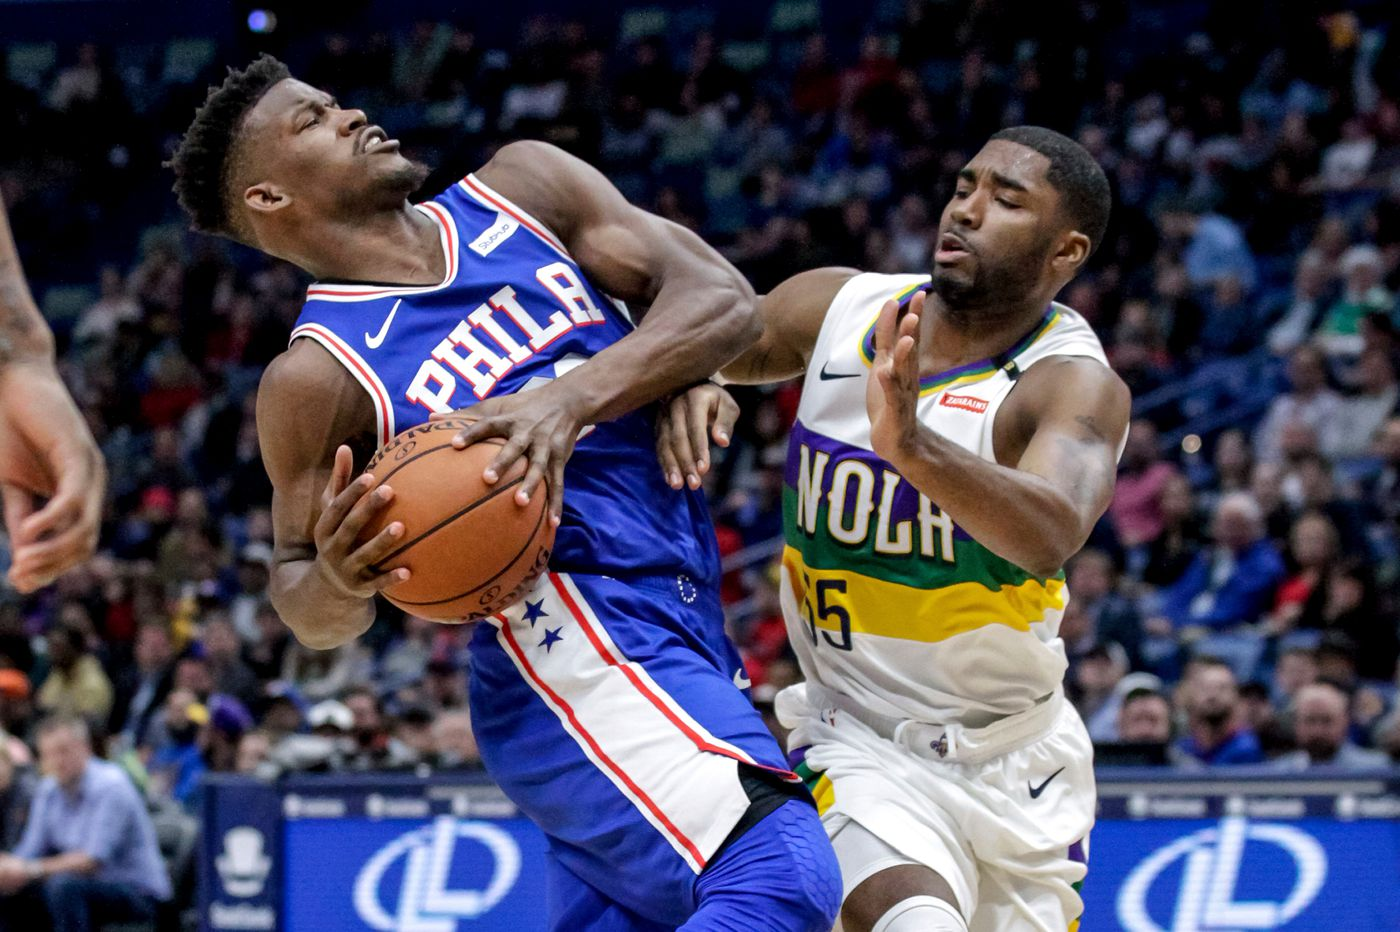 Sixers are forced to hold off the Pelicans, 111-110